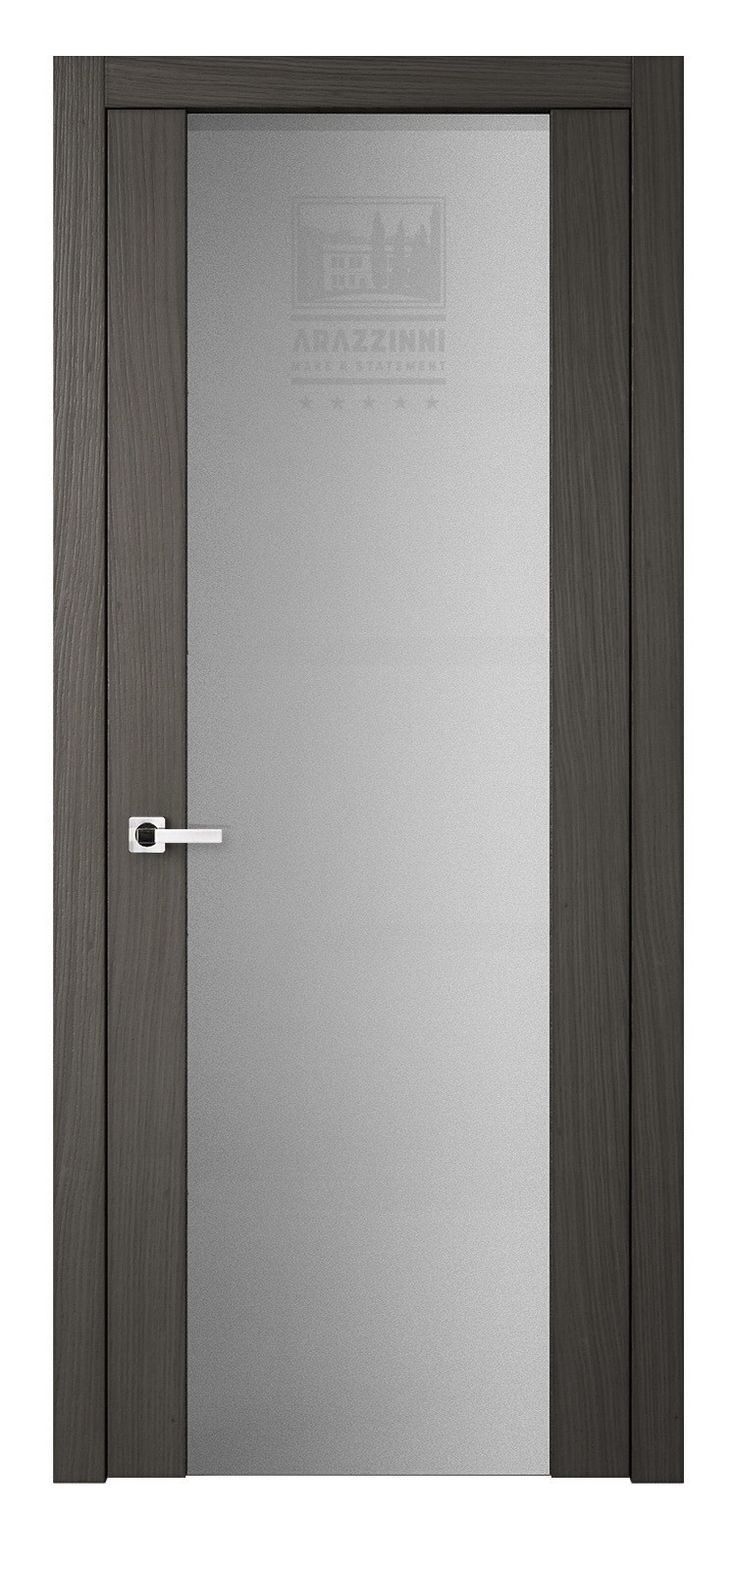 11 best images about ash oak massello di rovere on pinterest ash interior doors and furniture